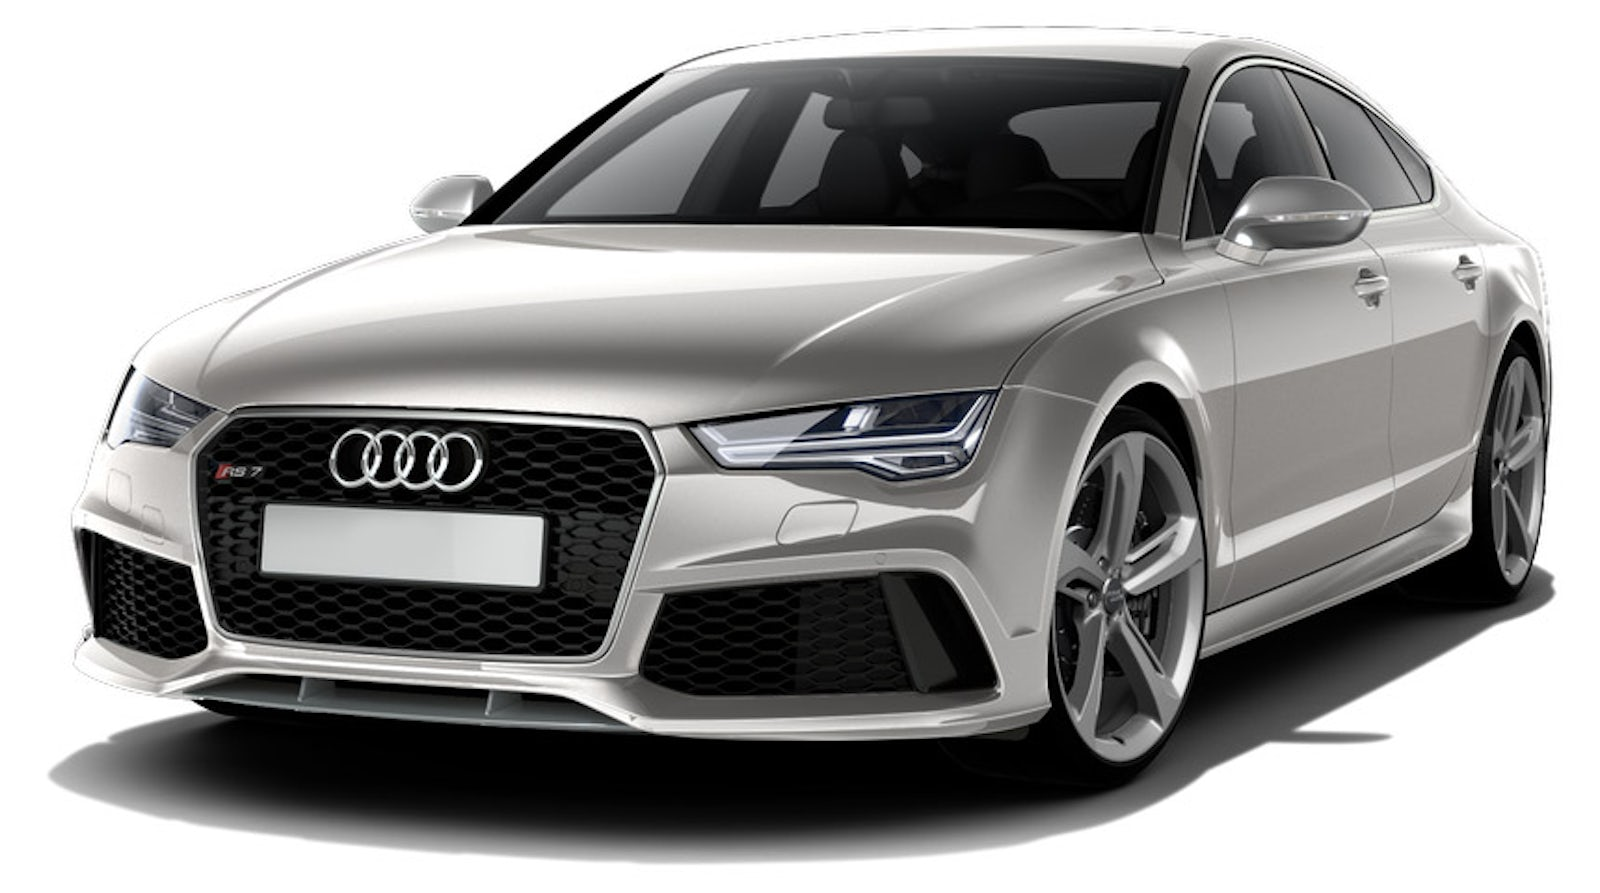 Audi A7 And Rs7 Colours Guide Prices Carwow 2017 Sportback With A Red Colour This High Tech Silver Should Give Your Futuristic Look Since Models Always Tend To Sell Well Theres No Reason Why Shouldnt Find Buyer